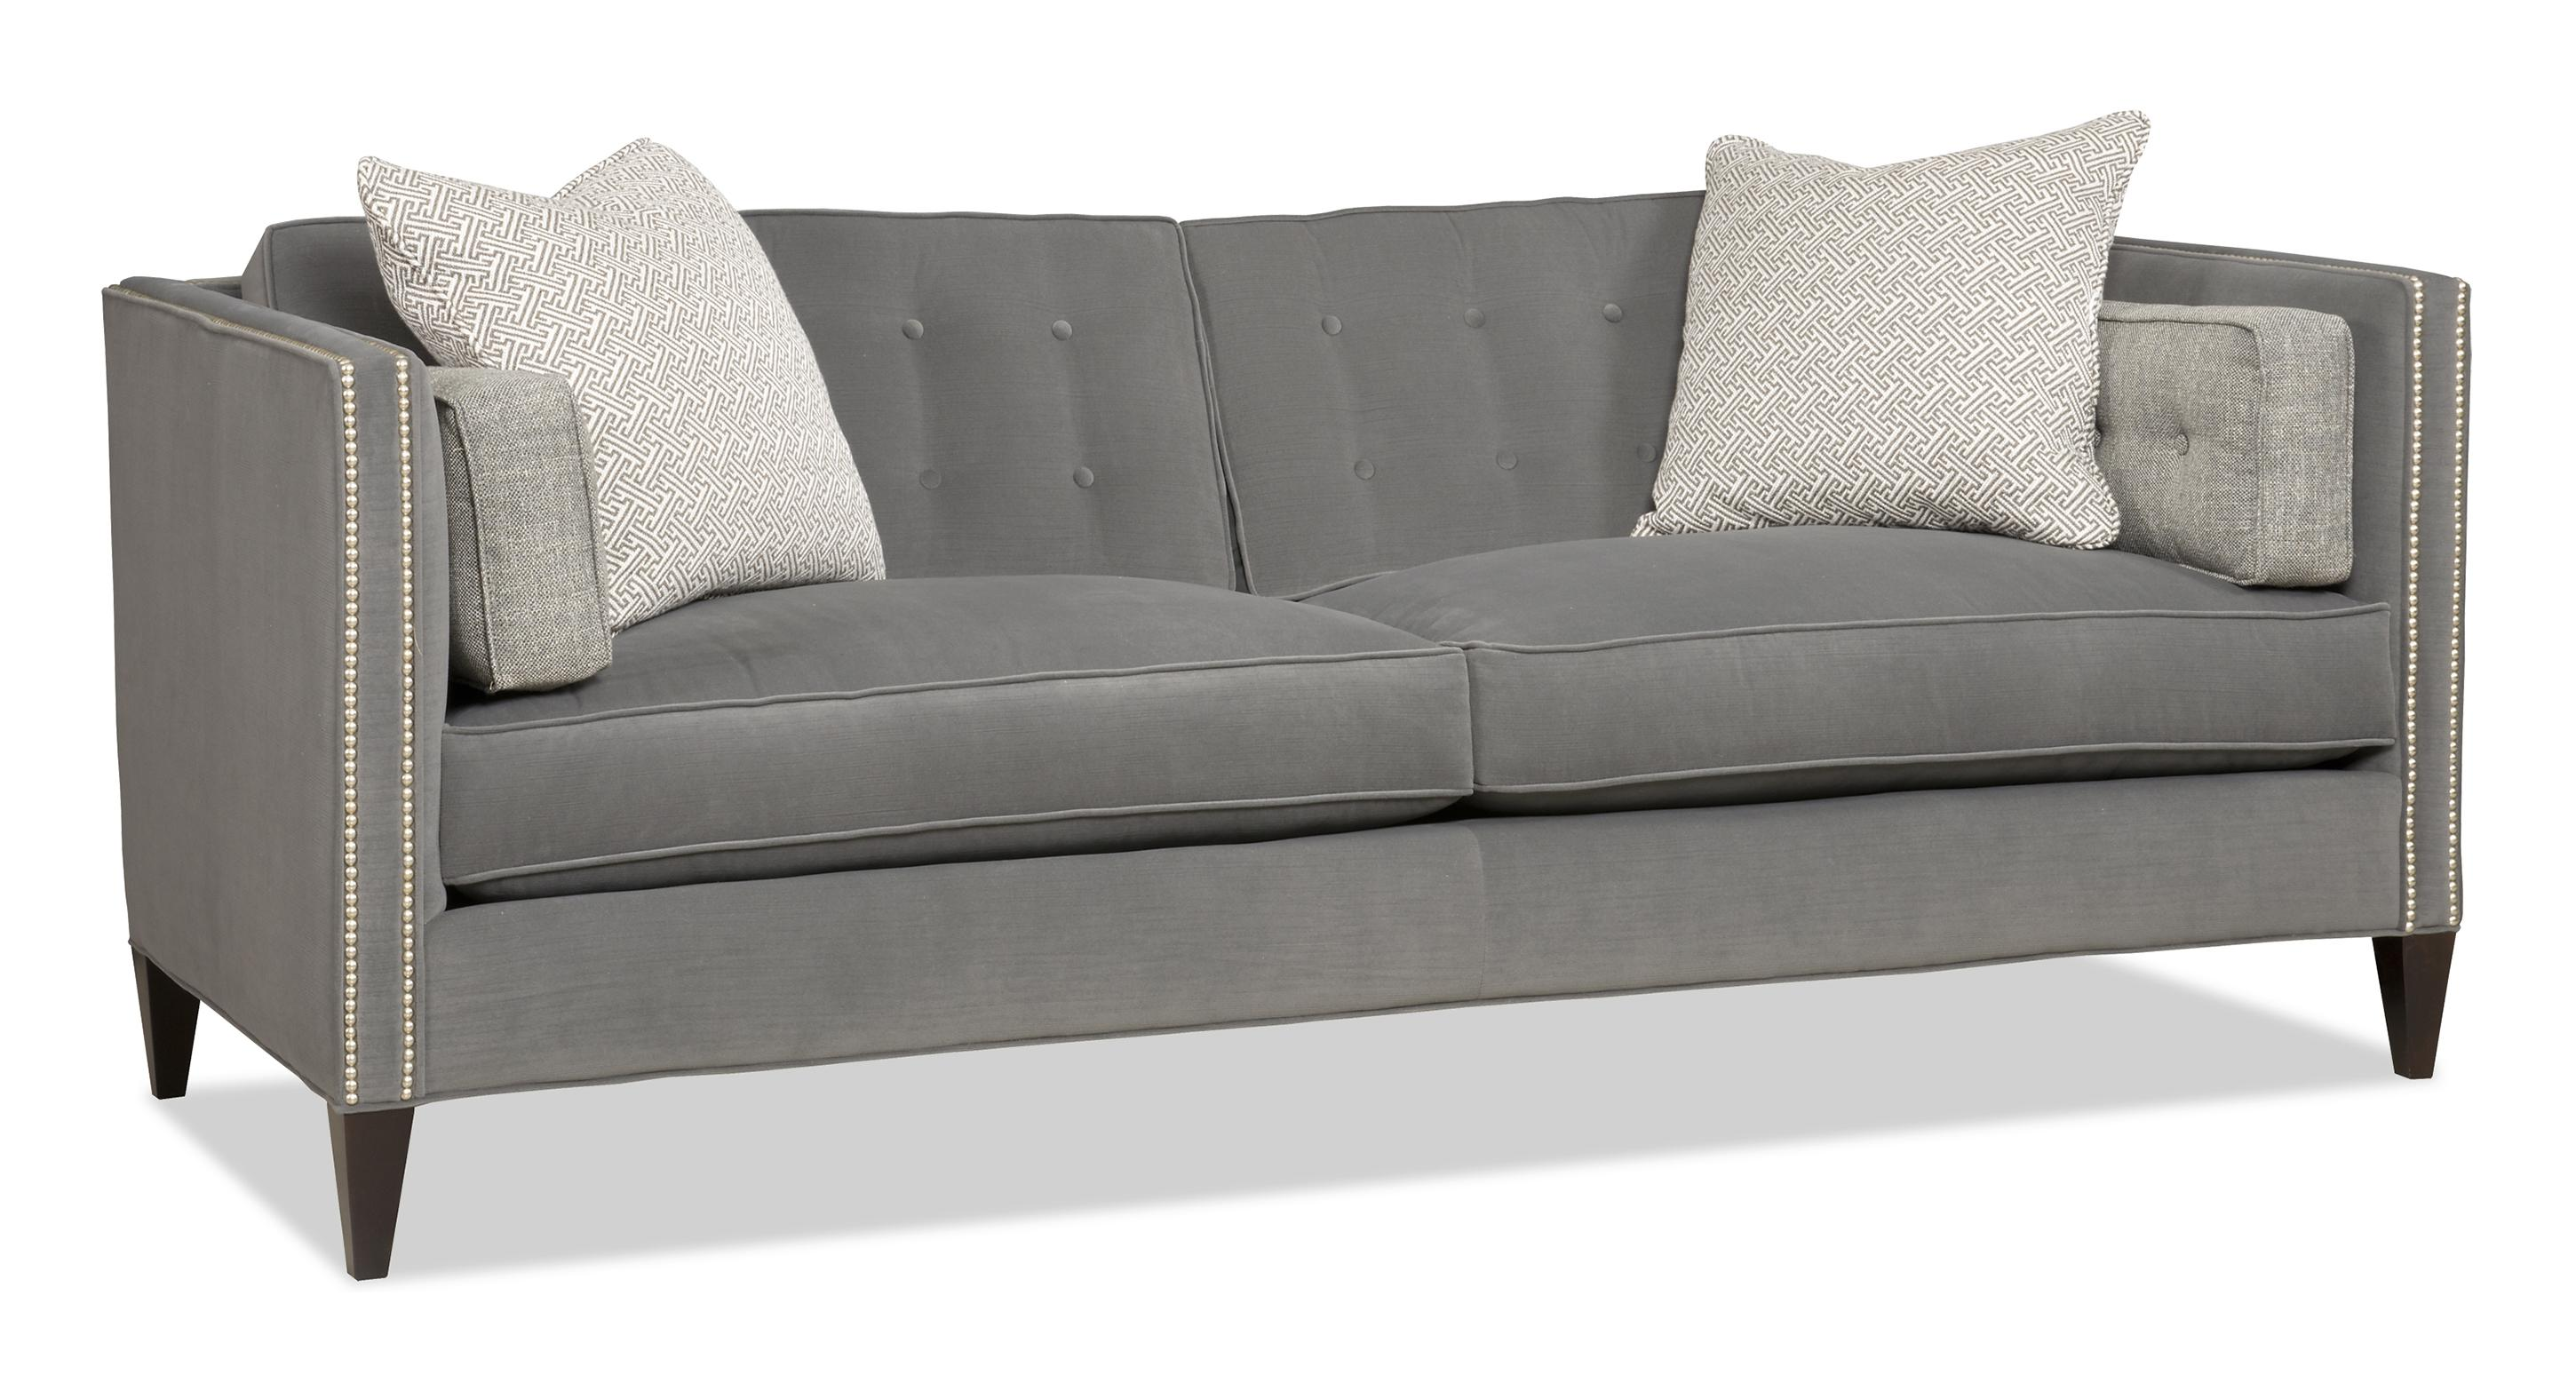 How To Add Nailhead Trim To Sofa Hickorycraft L Traditional